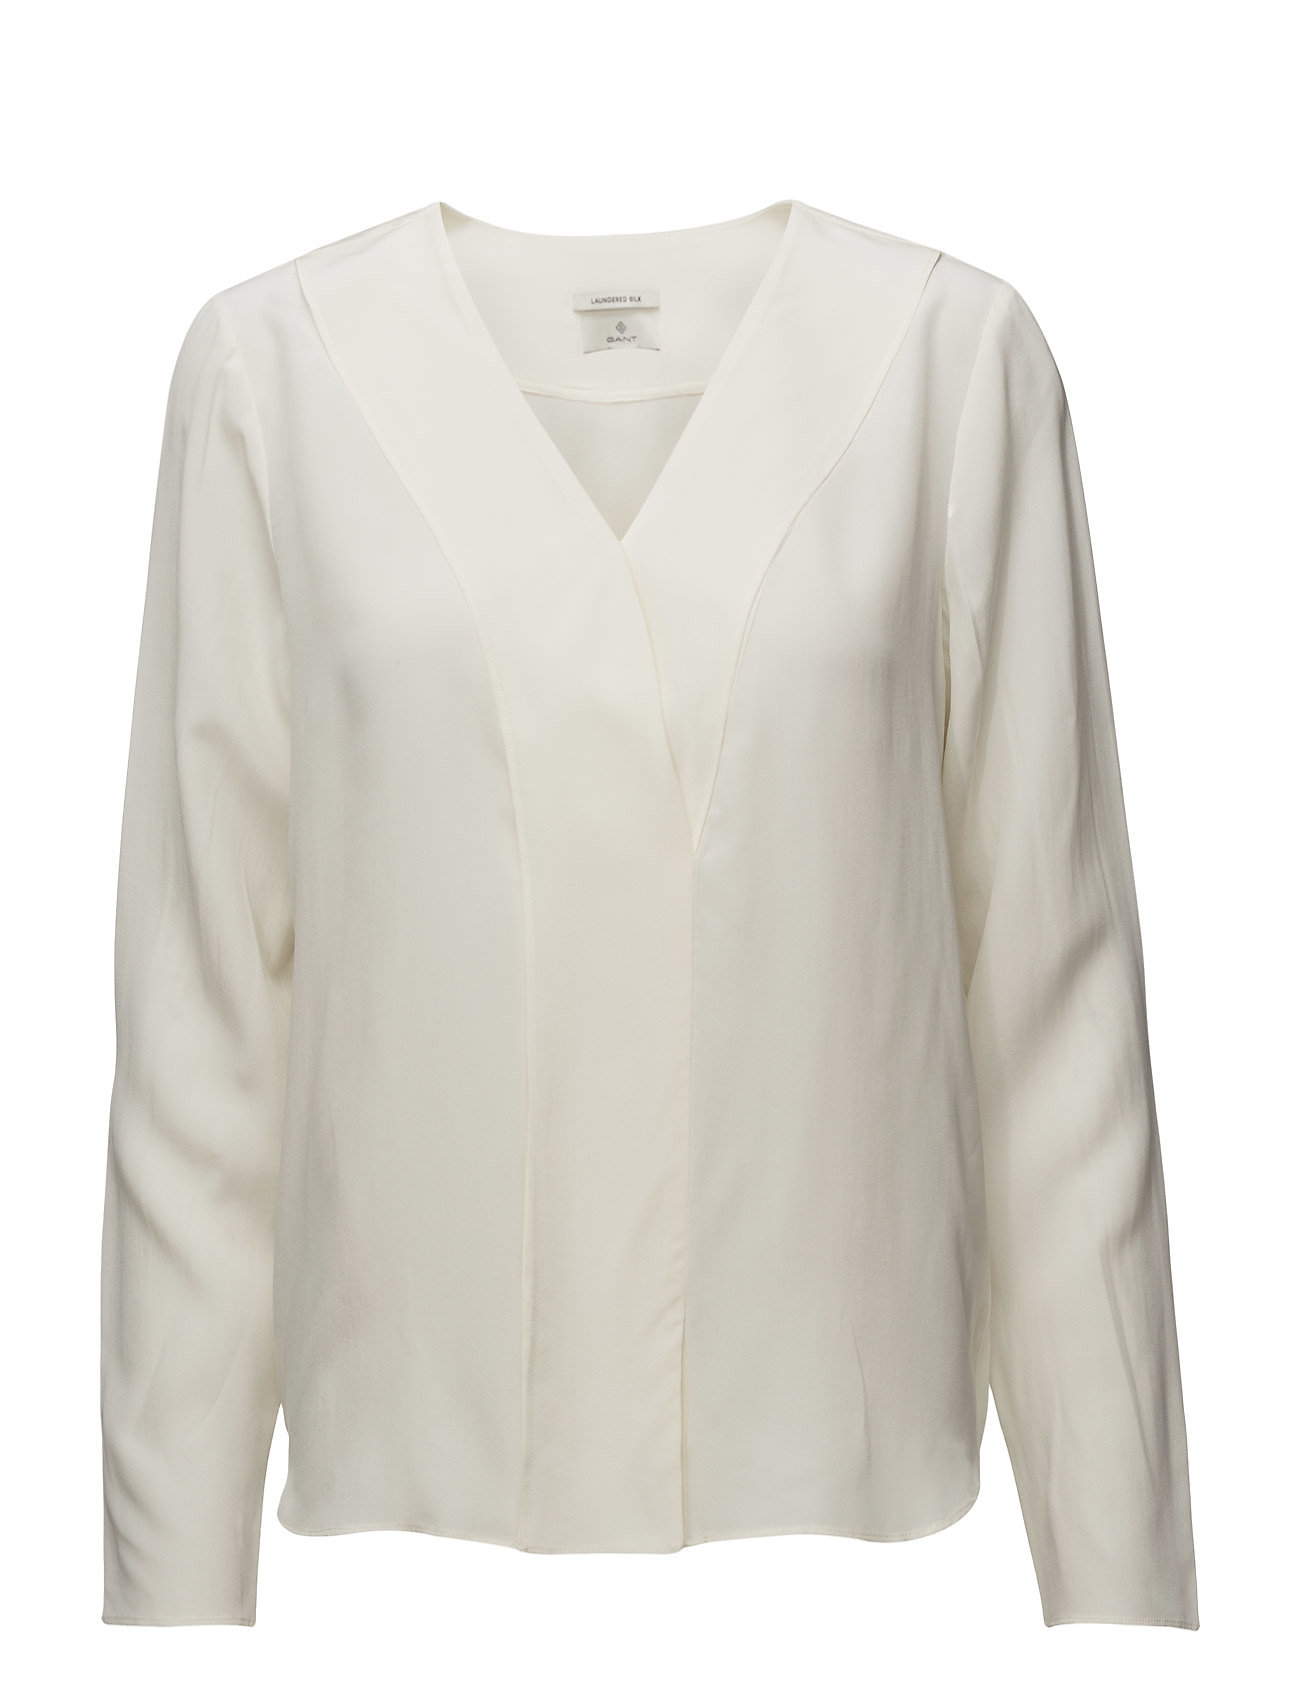 GANT G. SILK POP OVER BLOUSE